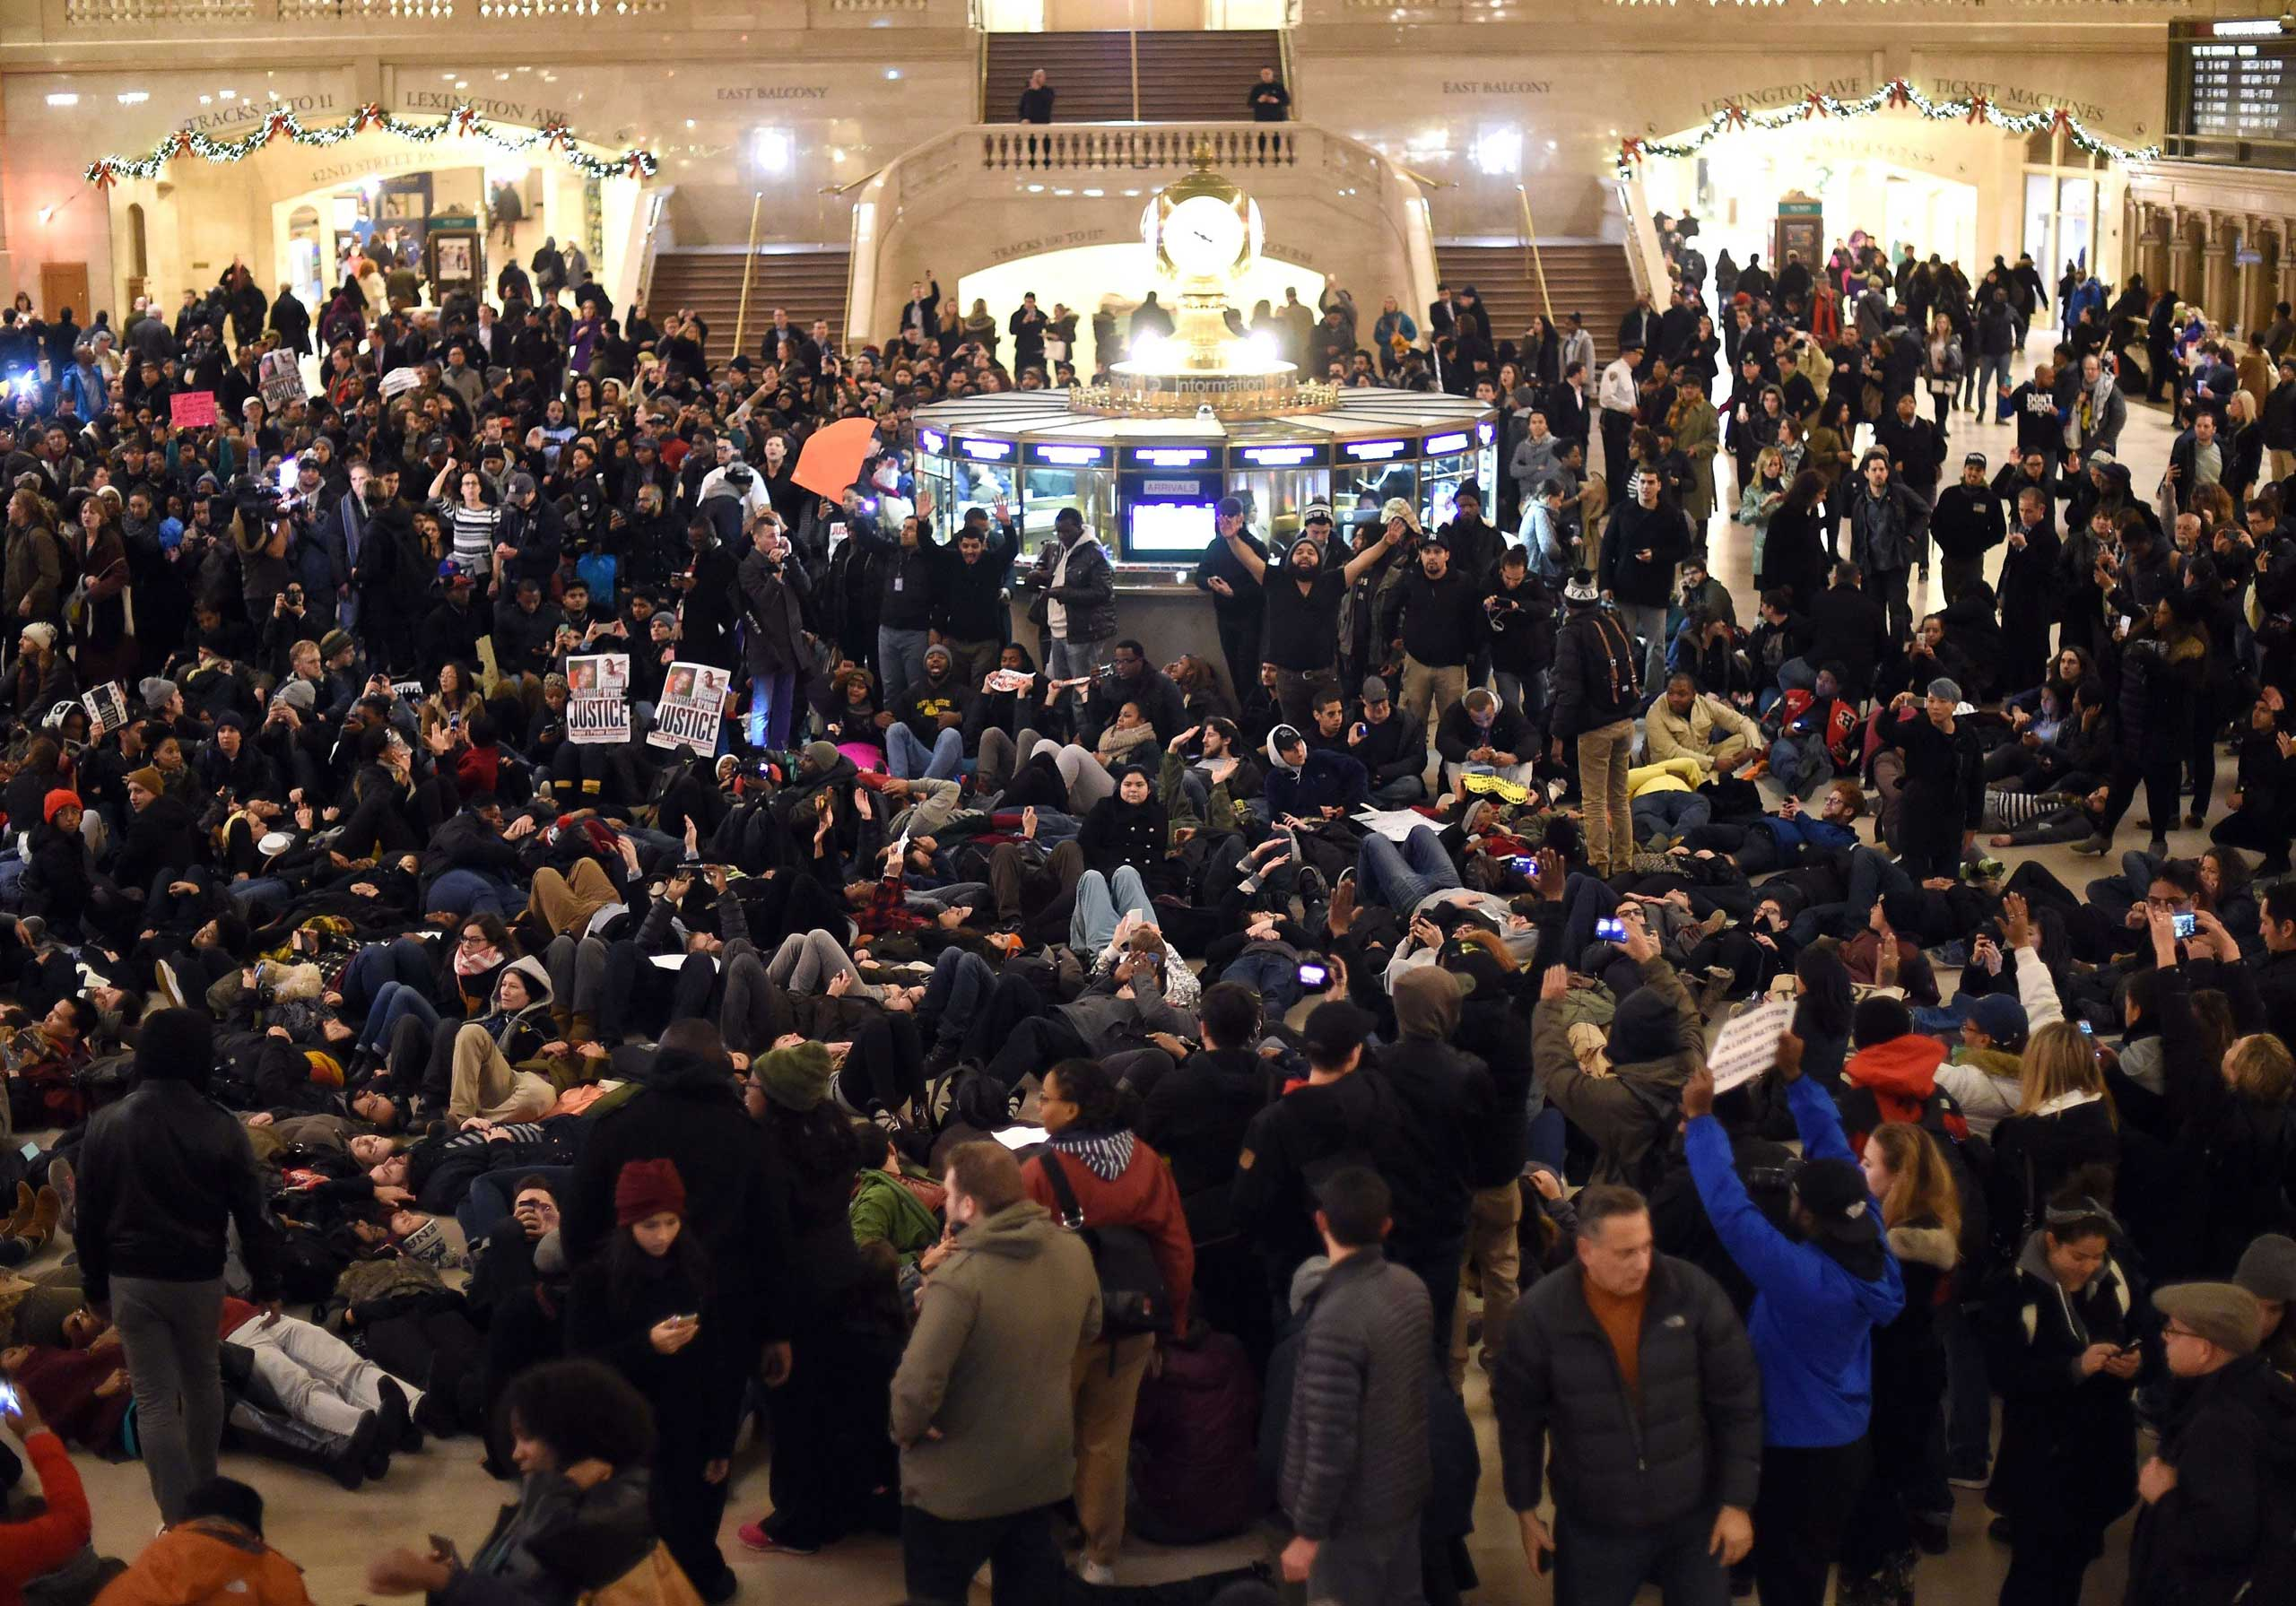 Protestors lay down in Grand Central Station during a protest in New York City on Dec. 3, 2014.